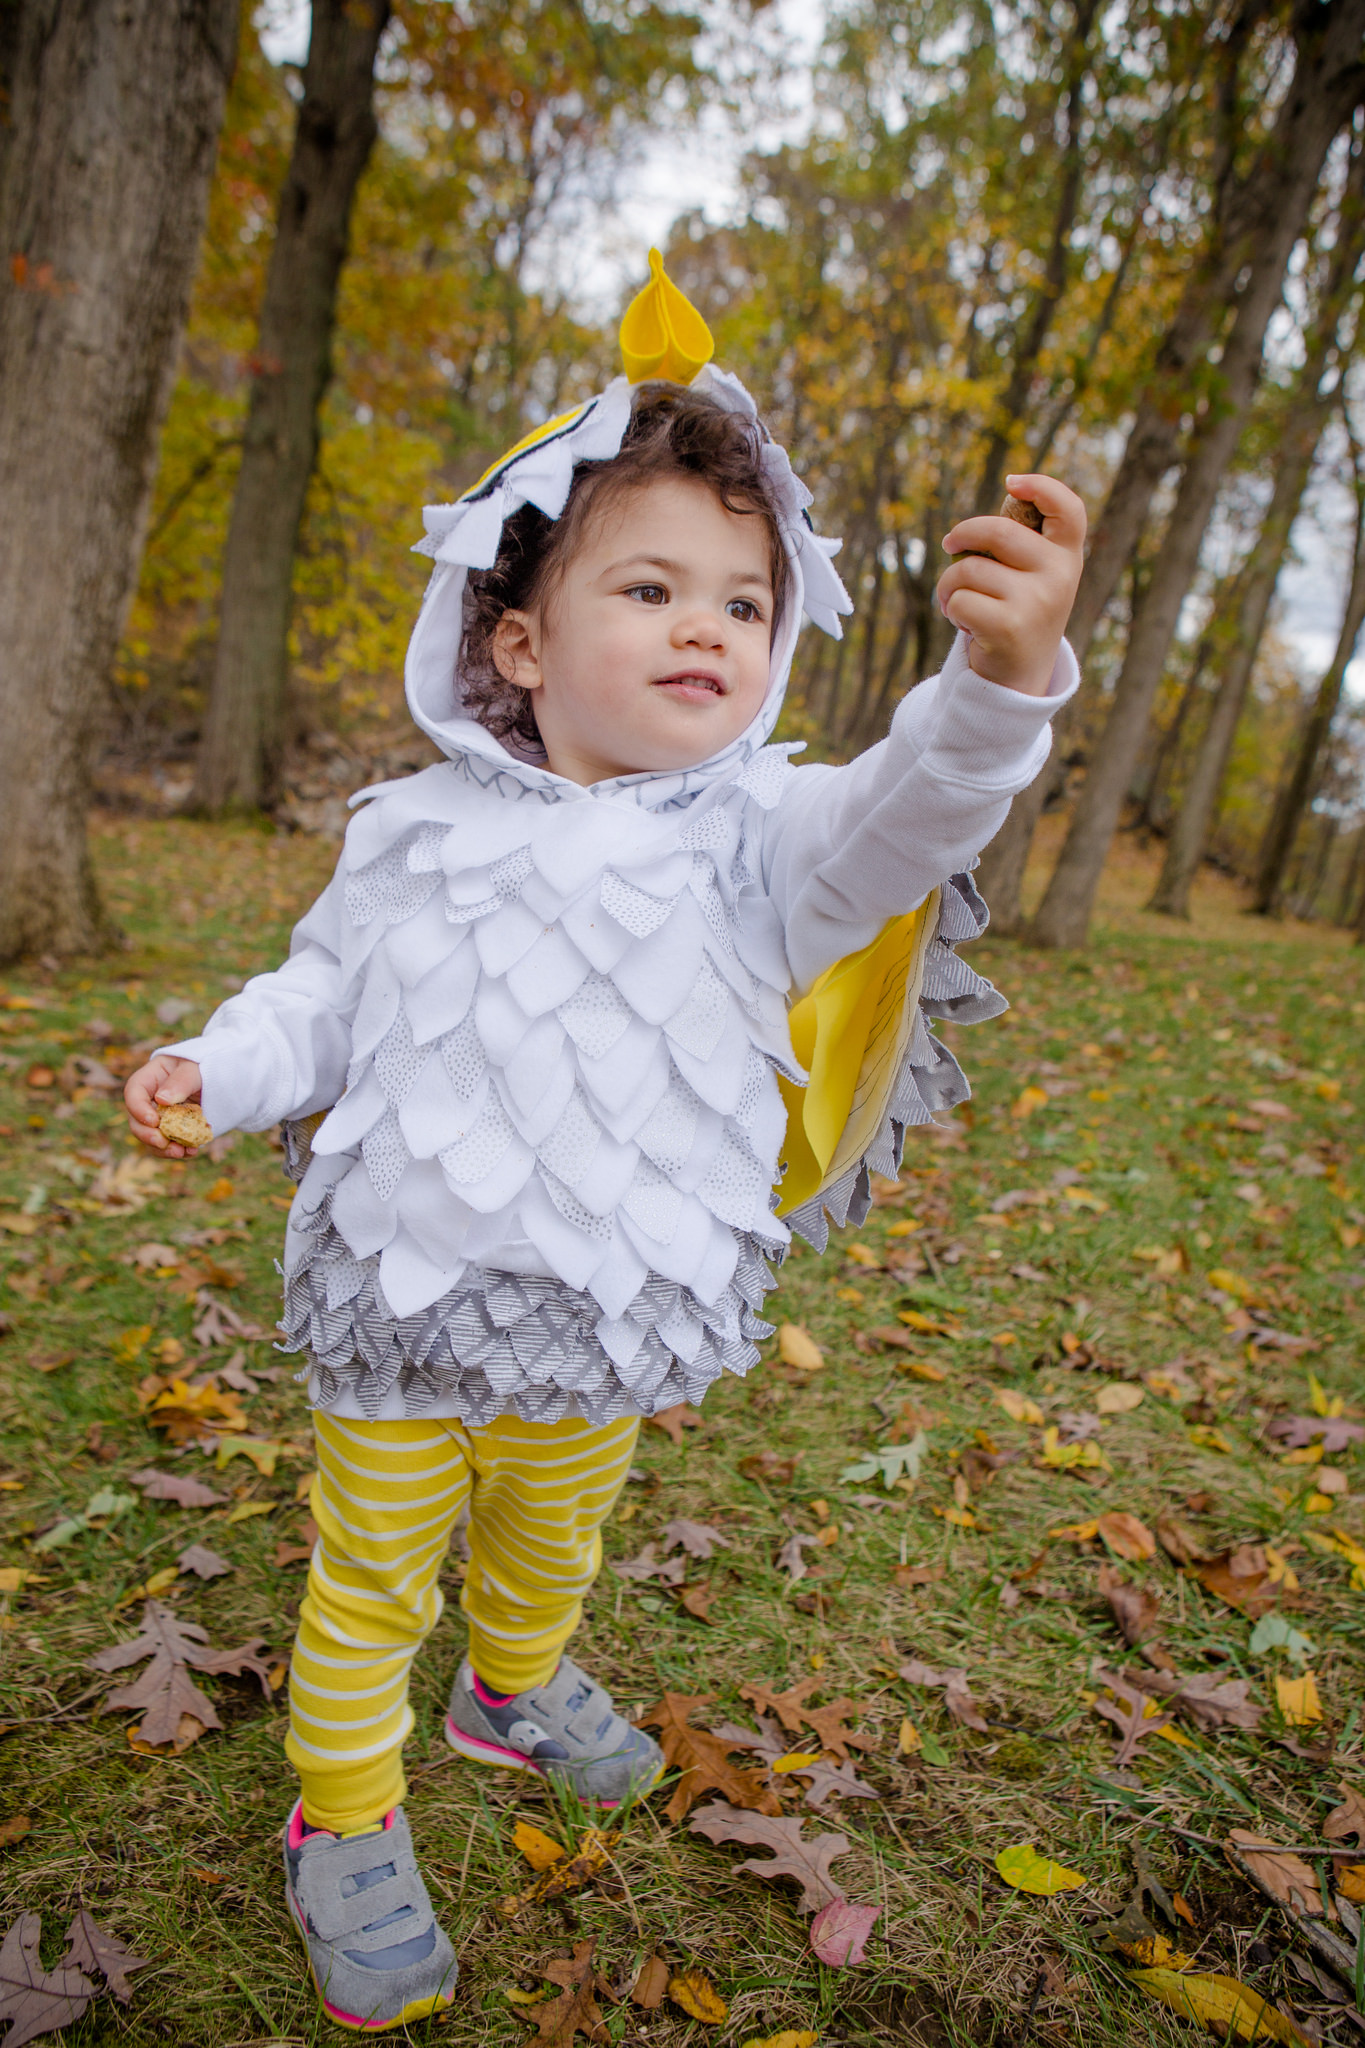 owl costume baby looking for acorns